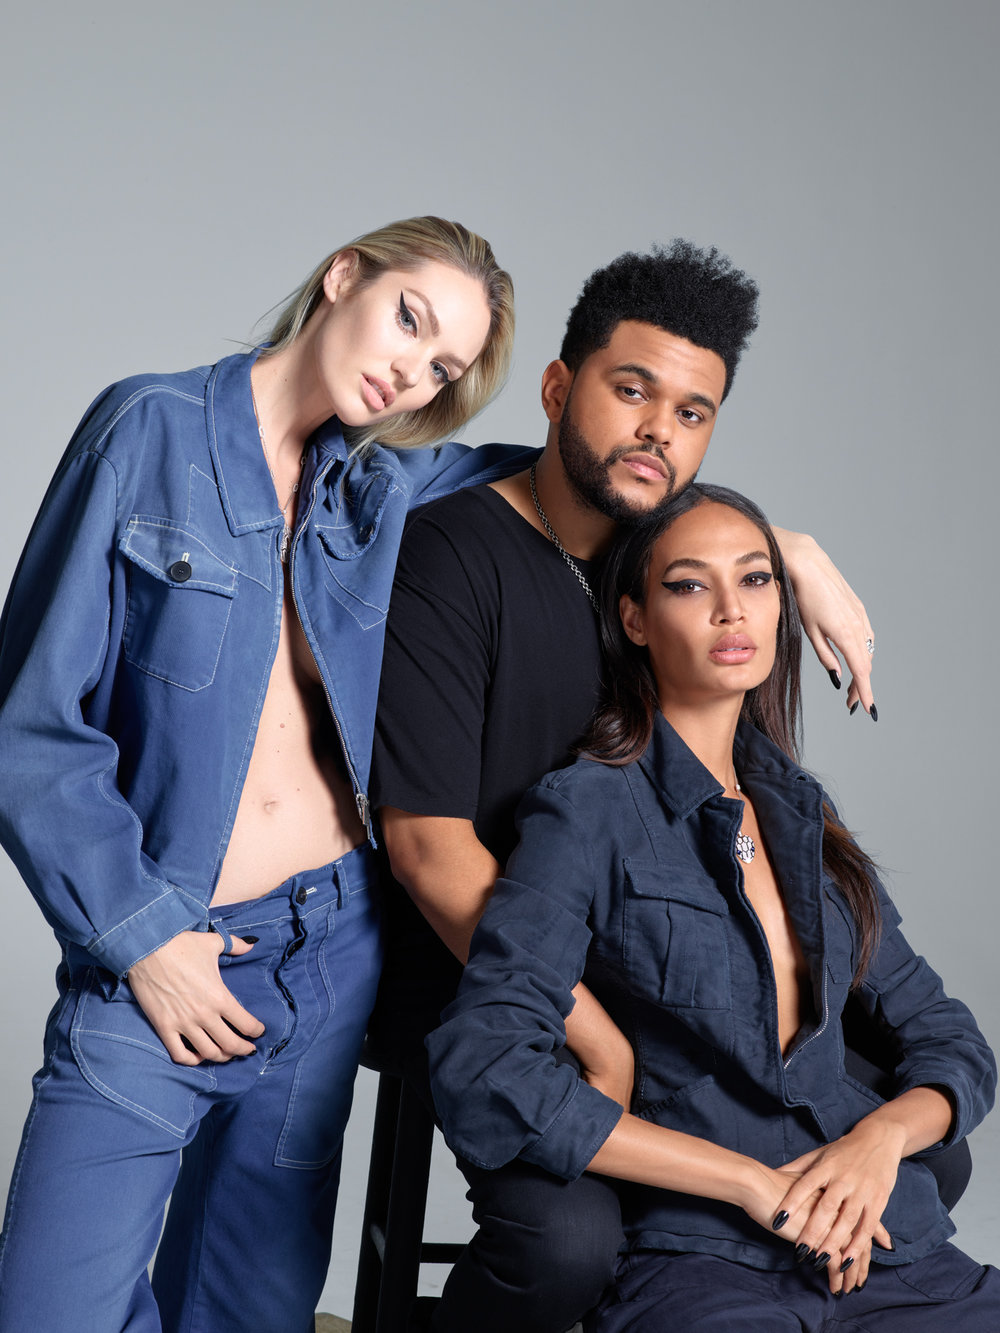 Candice Swanepoel, The Weeknd, and Joan Smalls, 2017 Harper's Bazaar September Issue